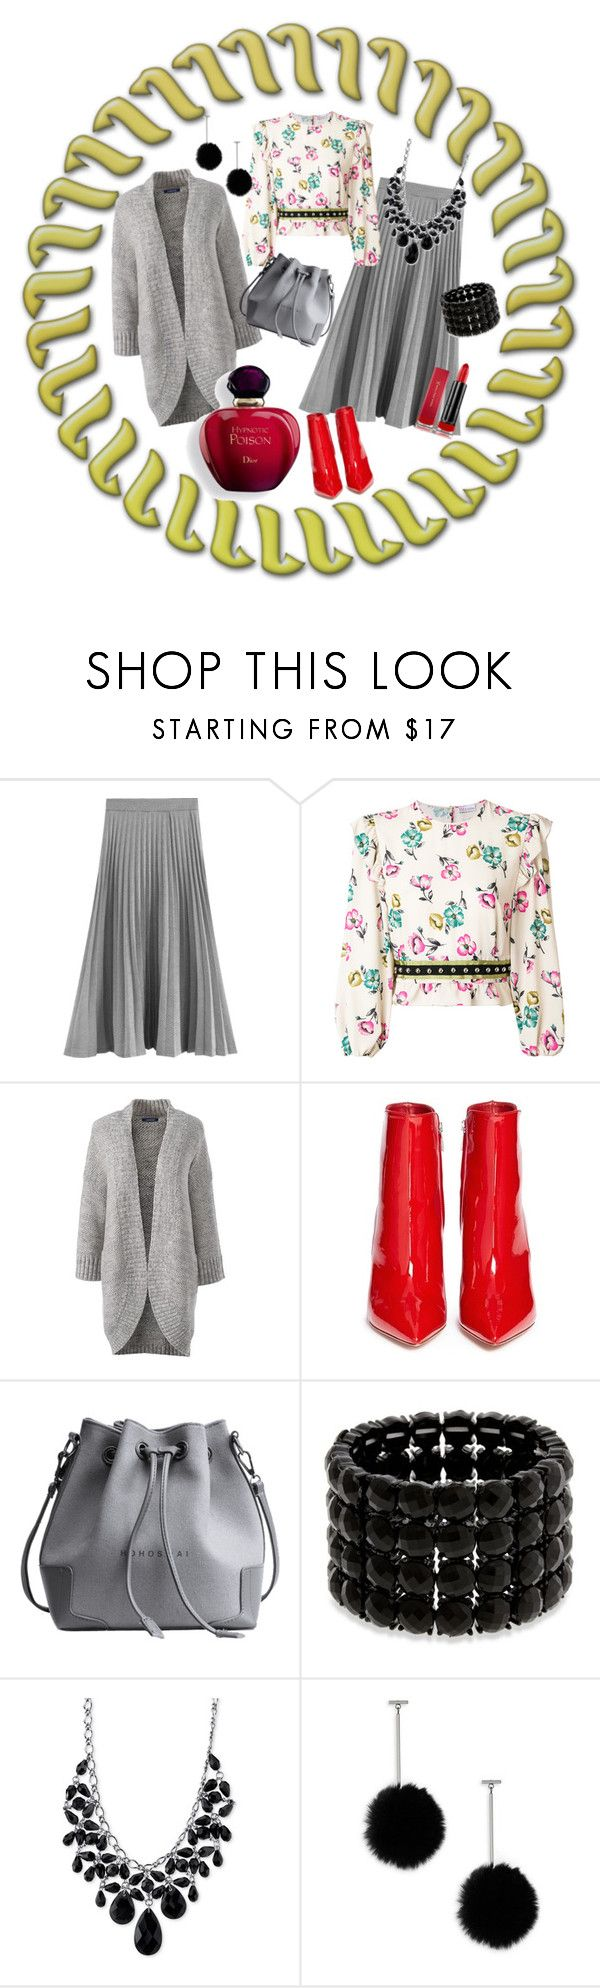 """""""Its A Sunny Sunday"""" by jeanstapley ❤ liked on Polyvore featuring RED Valentino, Lands' End, Gianvito Rossi, Erica Lyons, 2028, tuleste market and Max Factor"""